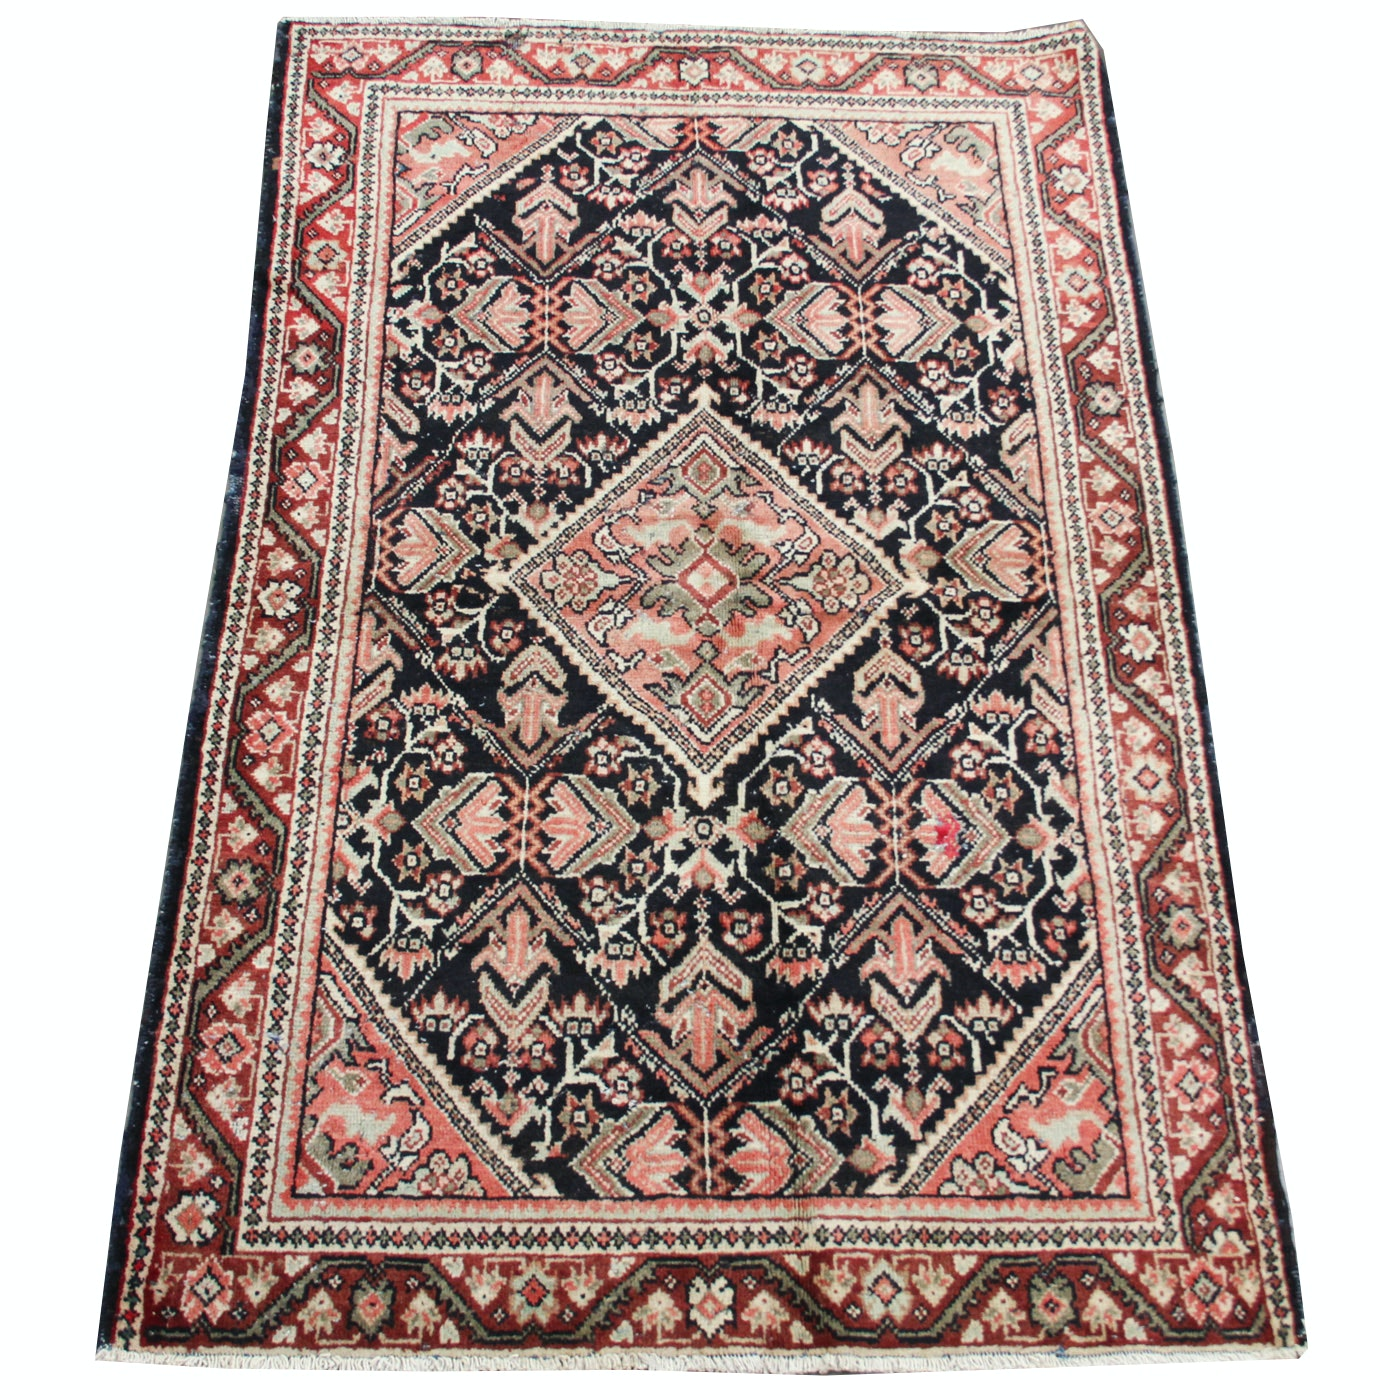 Semi-Antique Hand-Knotted Mahal Wool Area Rug